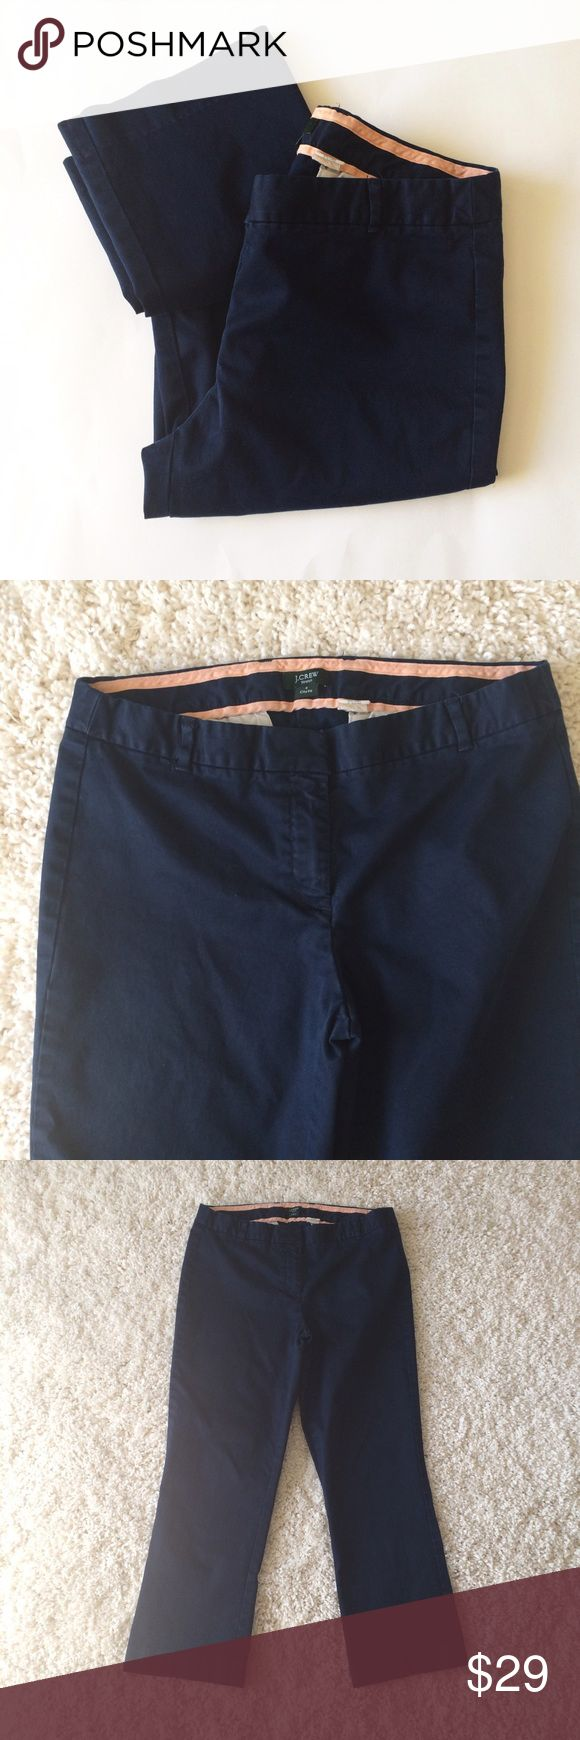 "J. CREW Navy blue city fit Ankle Pants chino NAVY blue city fit Ankle Pants. Zipper and tab closure. Cotton and spandex. Waist 15"" across. Inseam 24.5"". Rise 8.5"". Leg opening 7.75"" across. J. Crew Pants Ankle & Cropped"